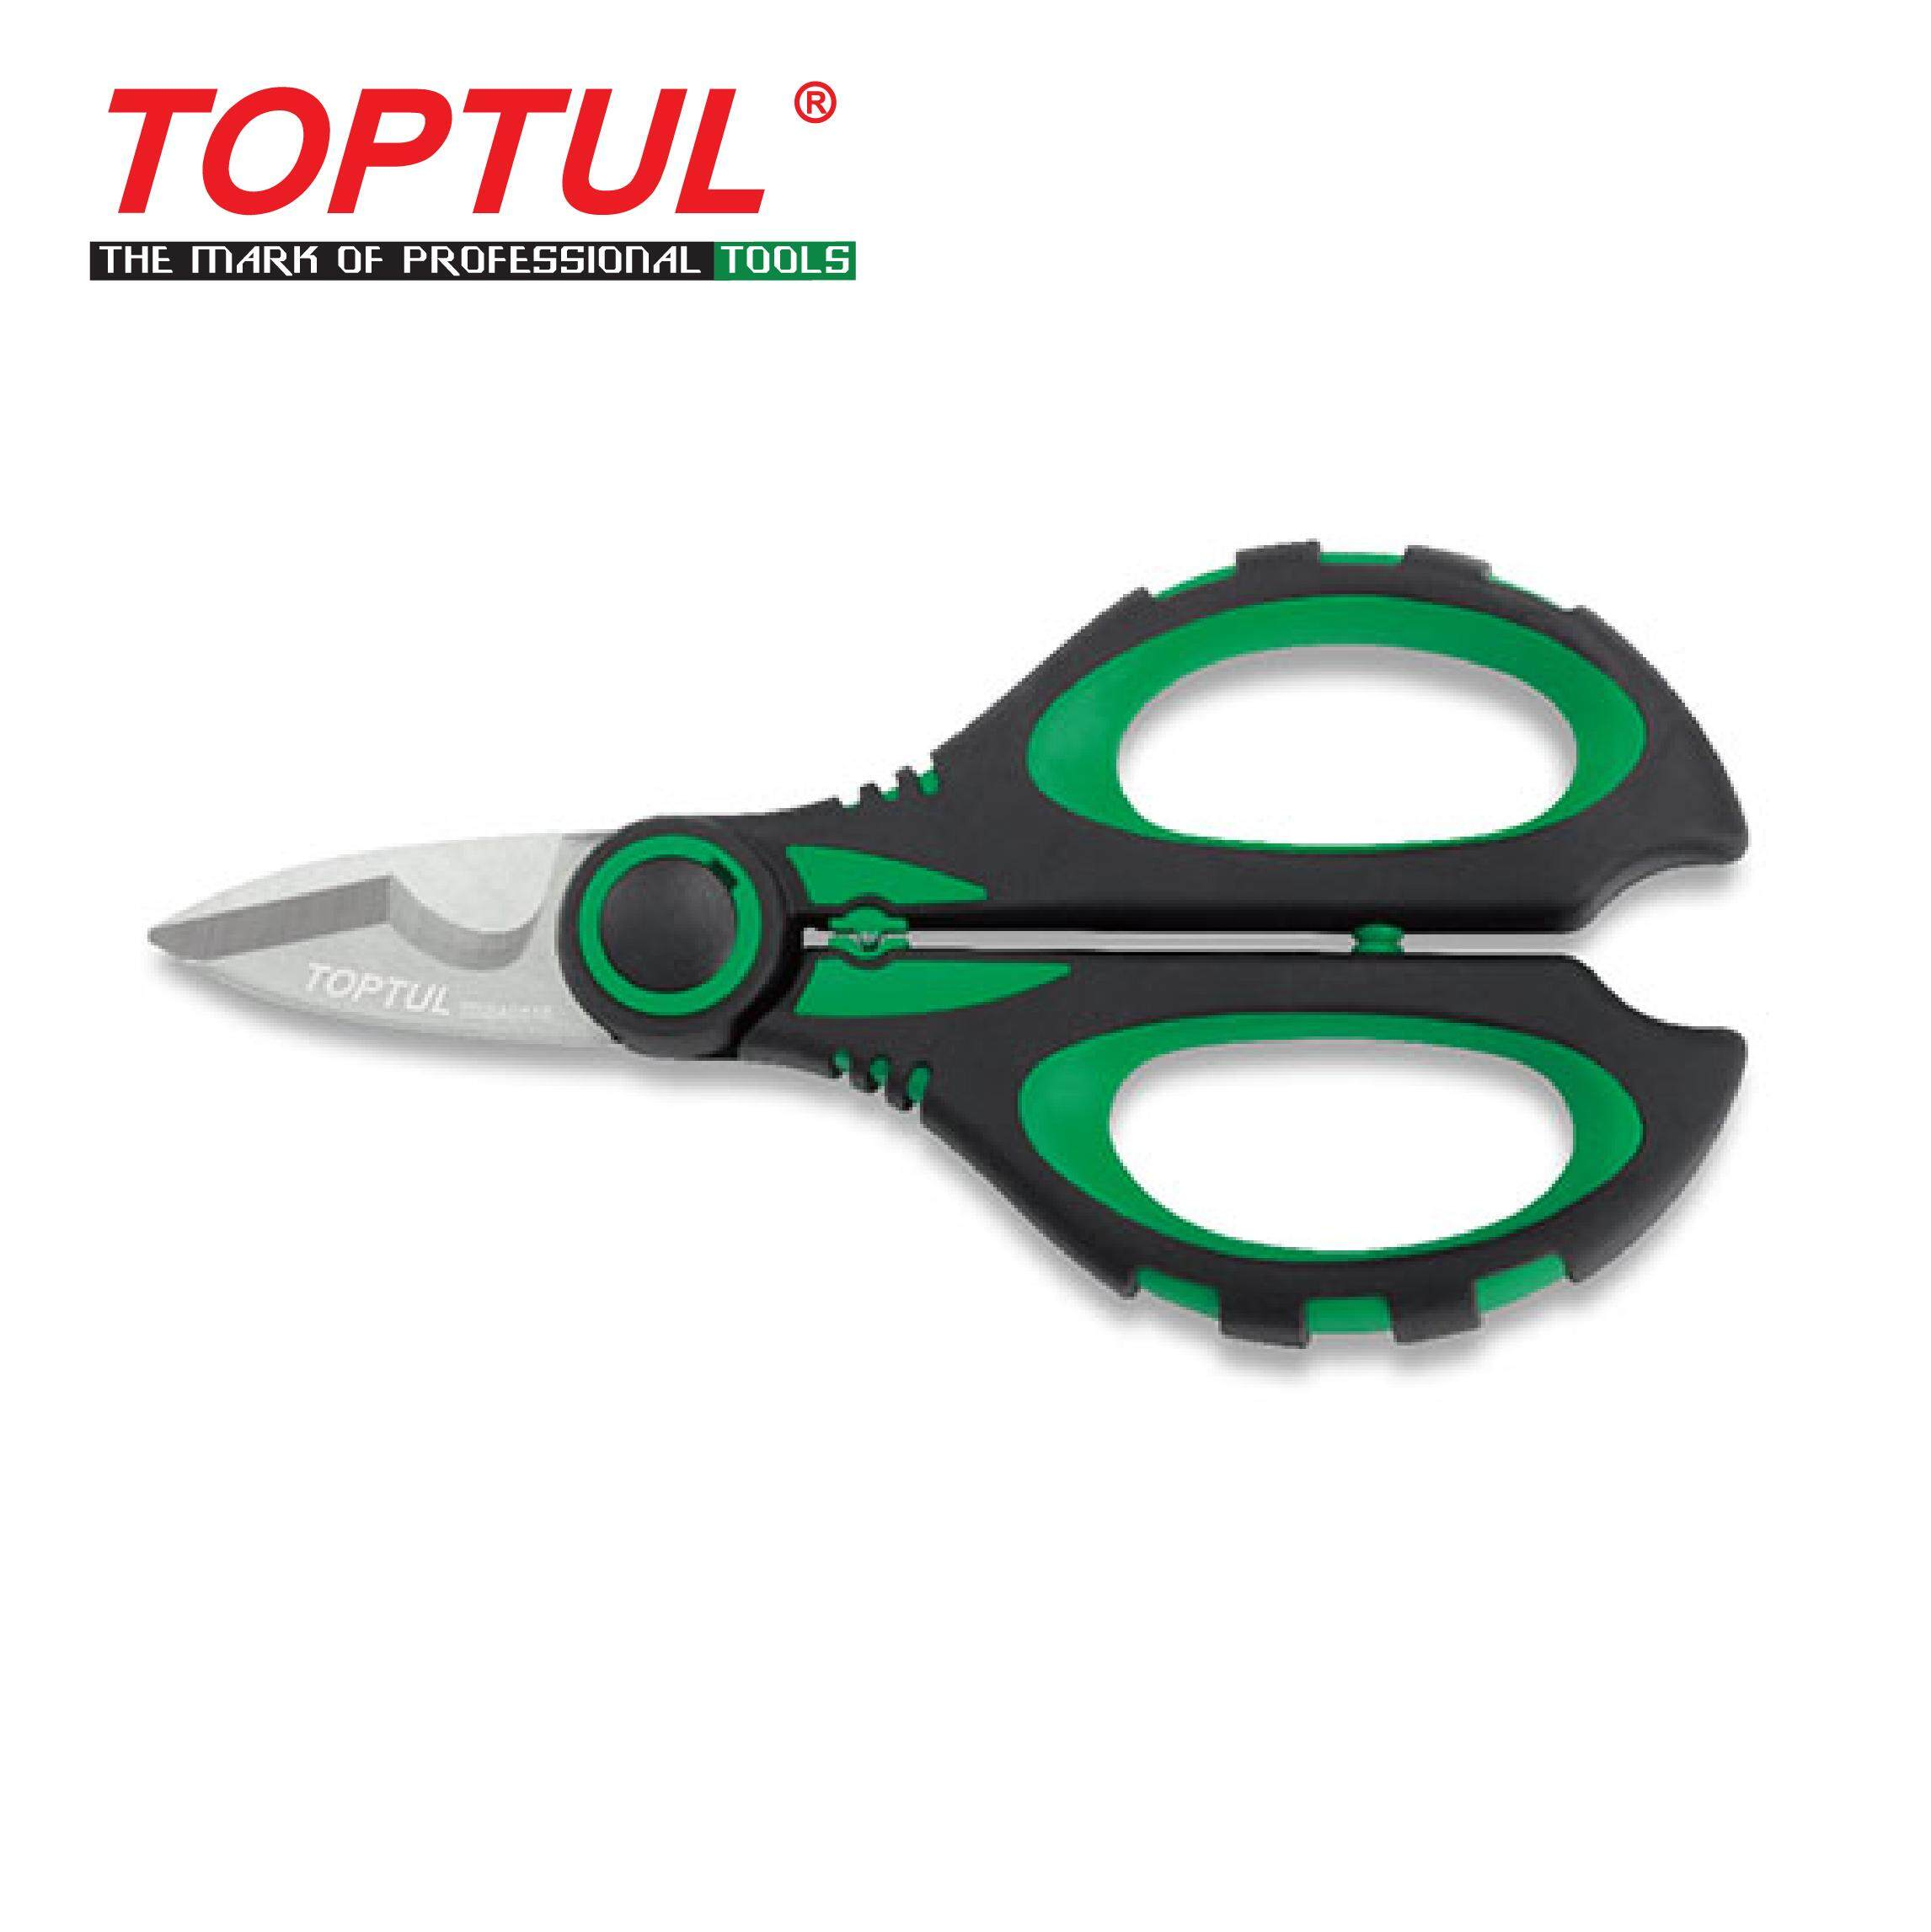 TOPTUL Heavy Duty Multi-Purpose Electricians Scissors (SBBA0516)